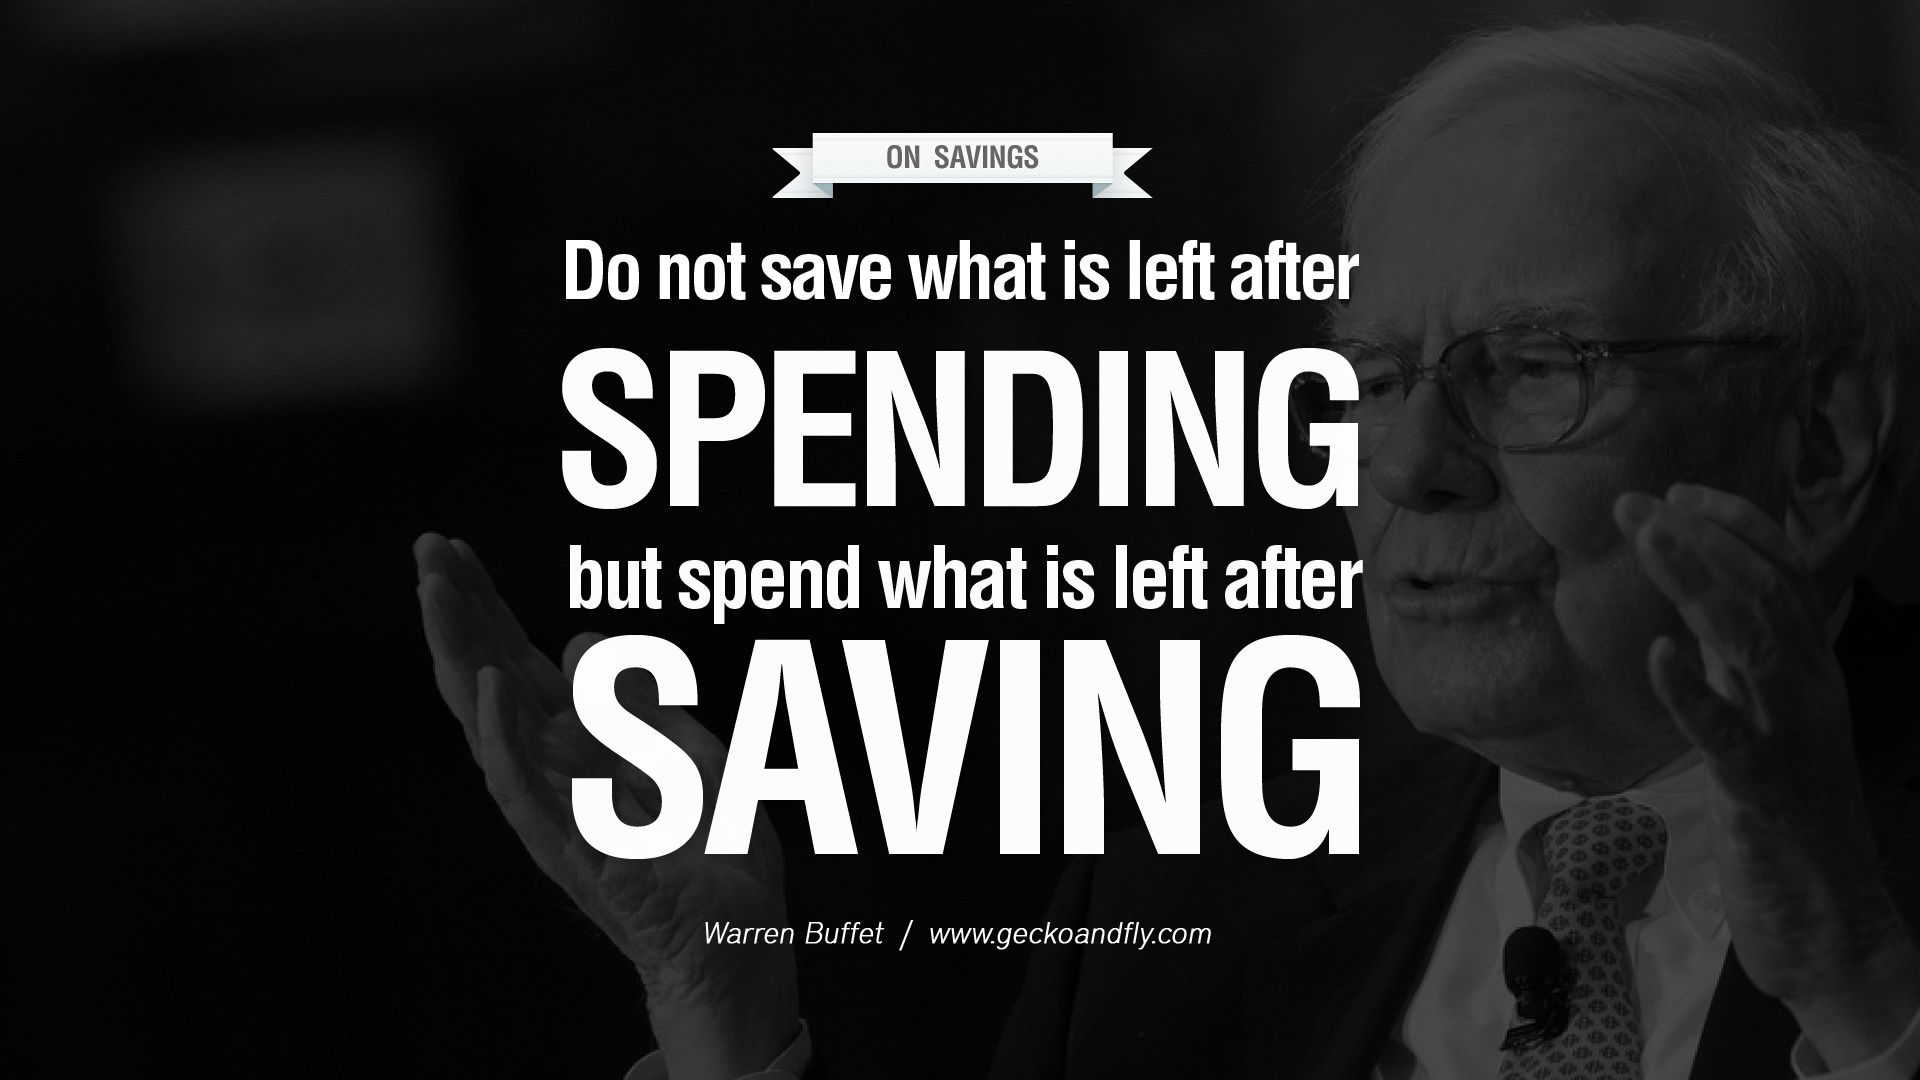 Saving Investment quotes, Excellence quotes, Financial